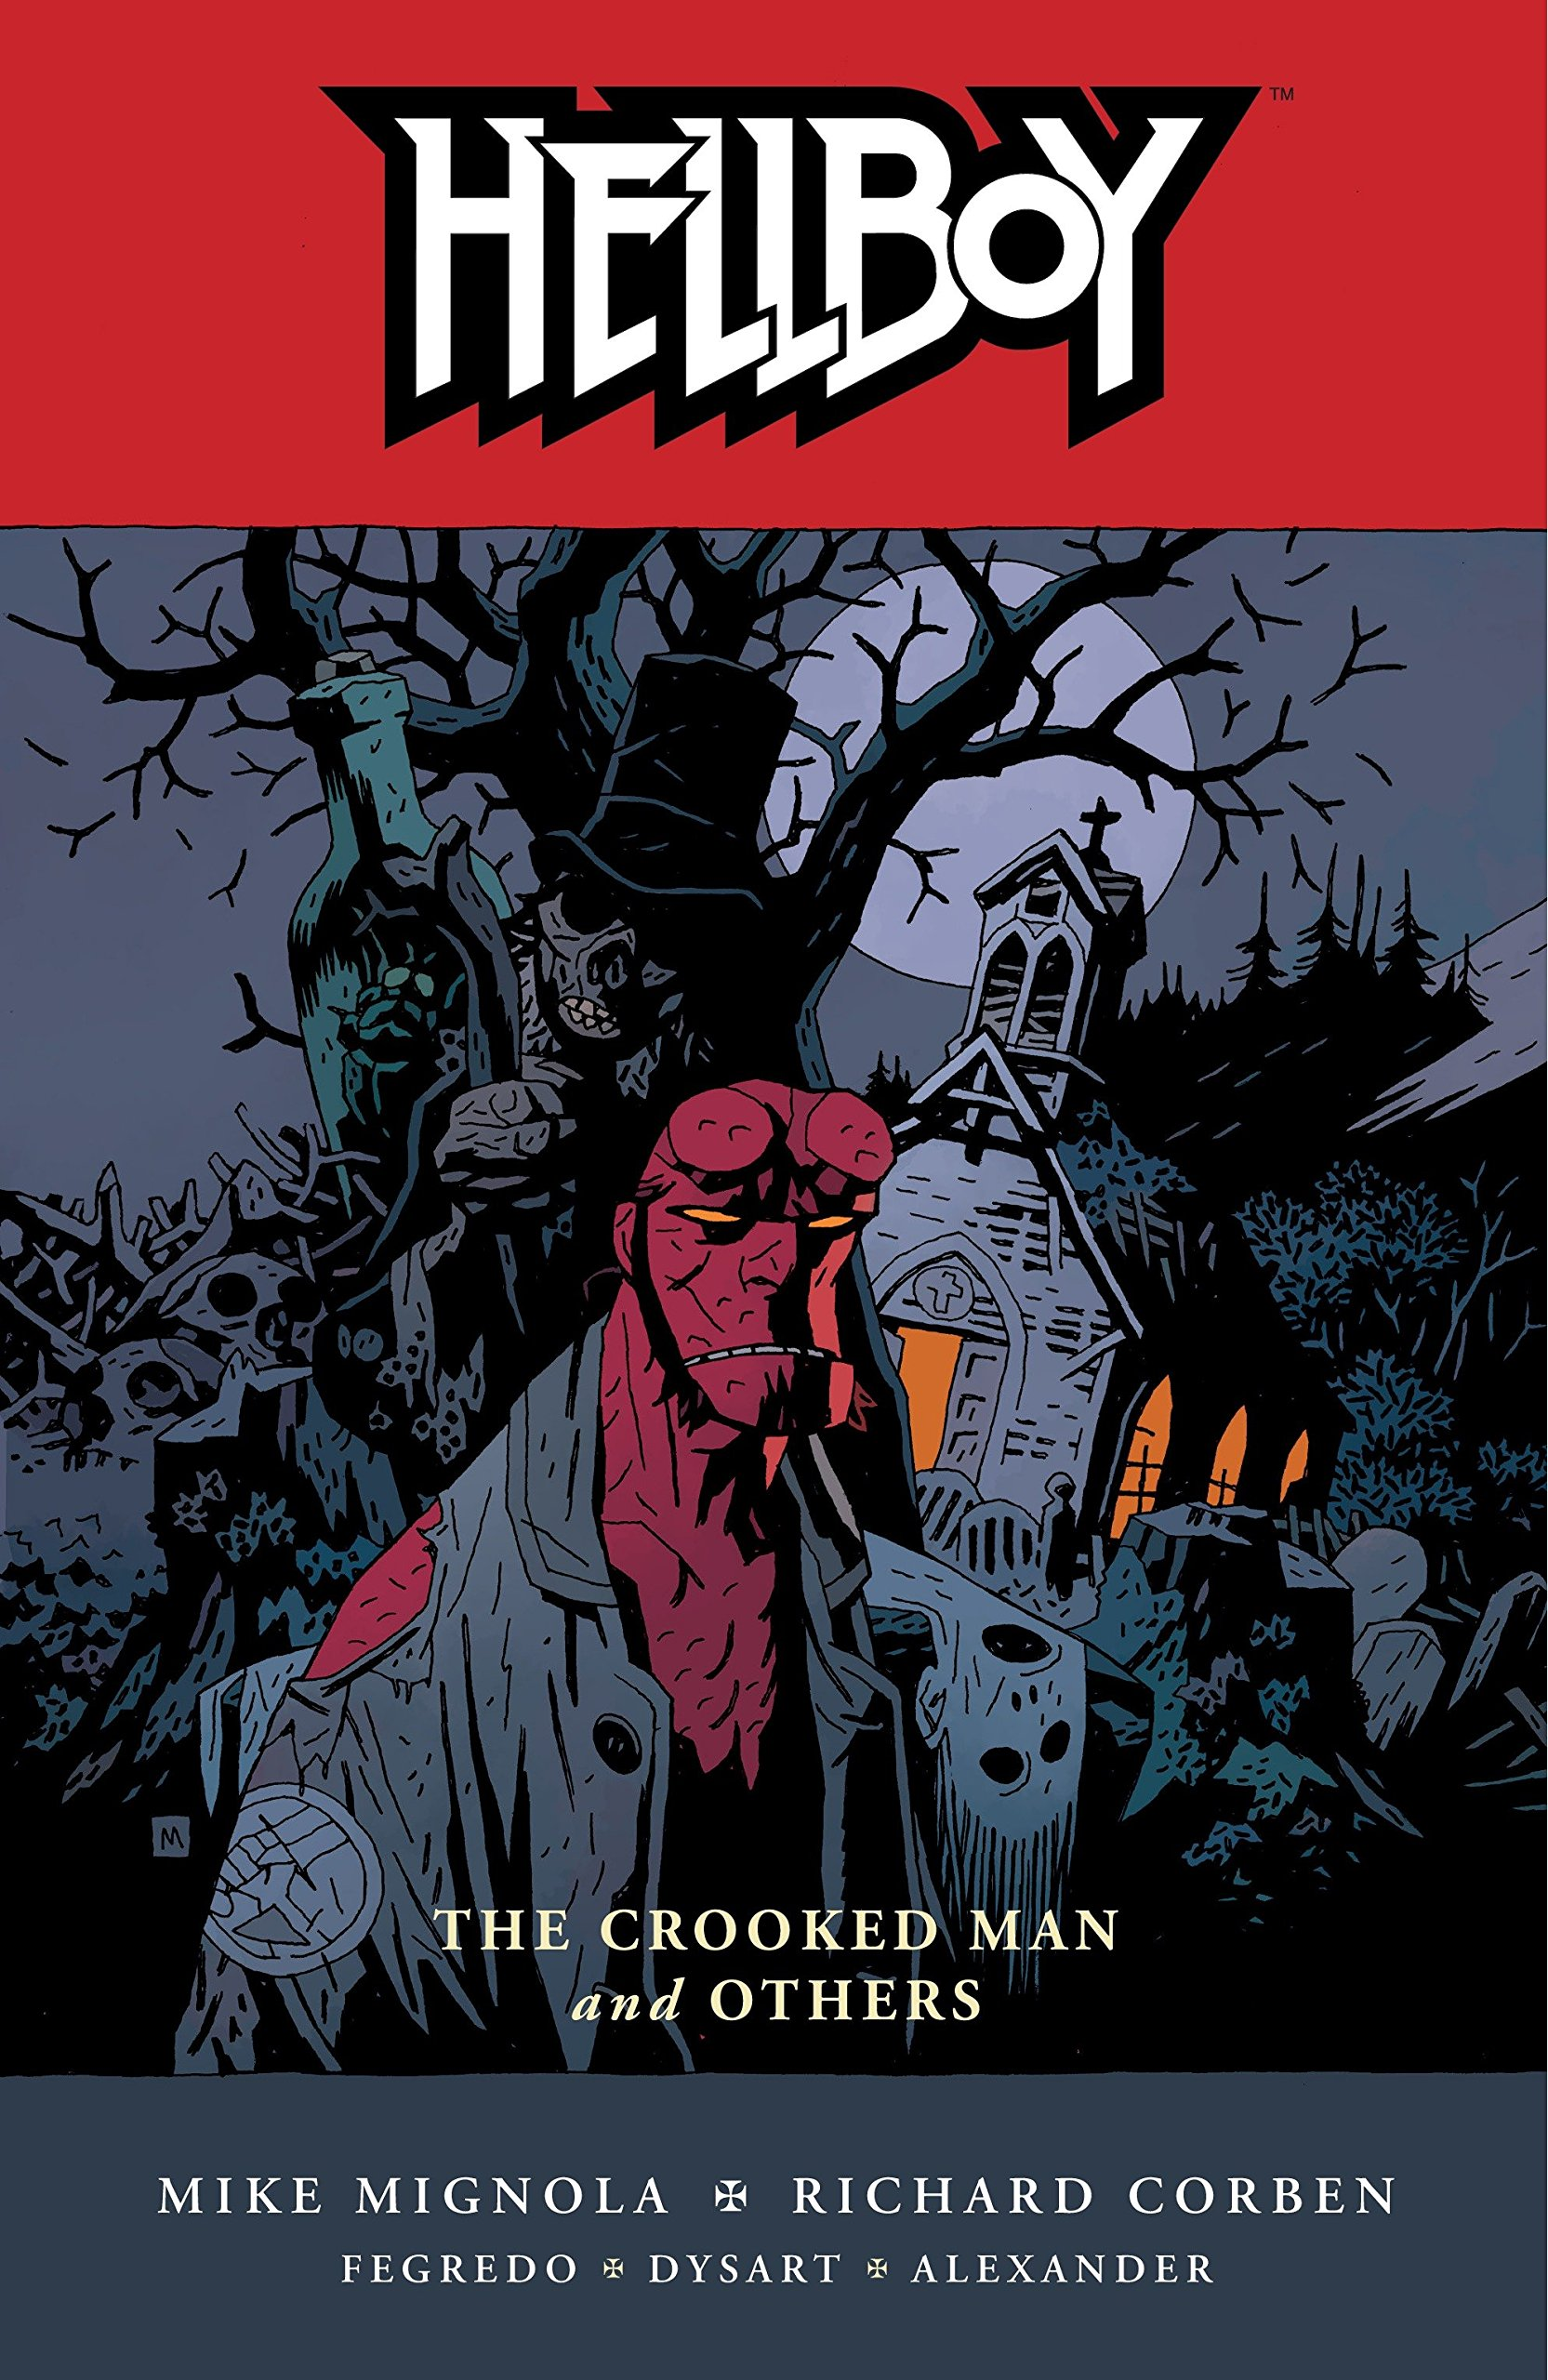 The Crooked Man and Others story by Mike Mignola